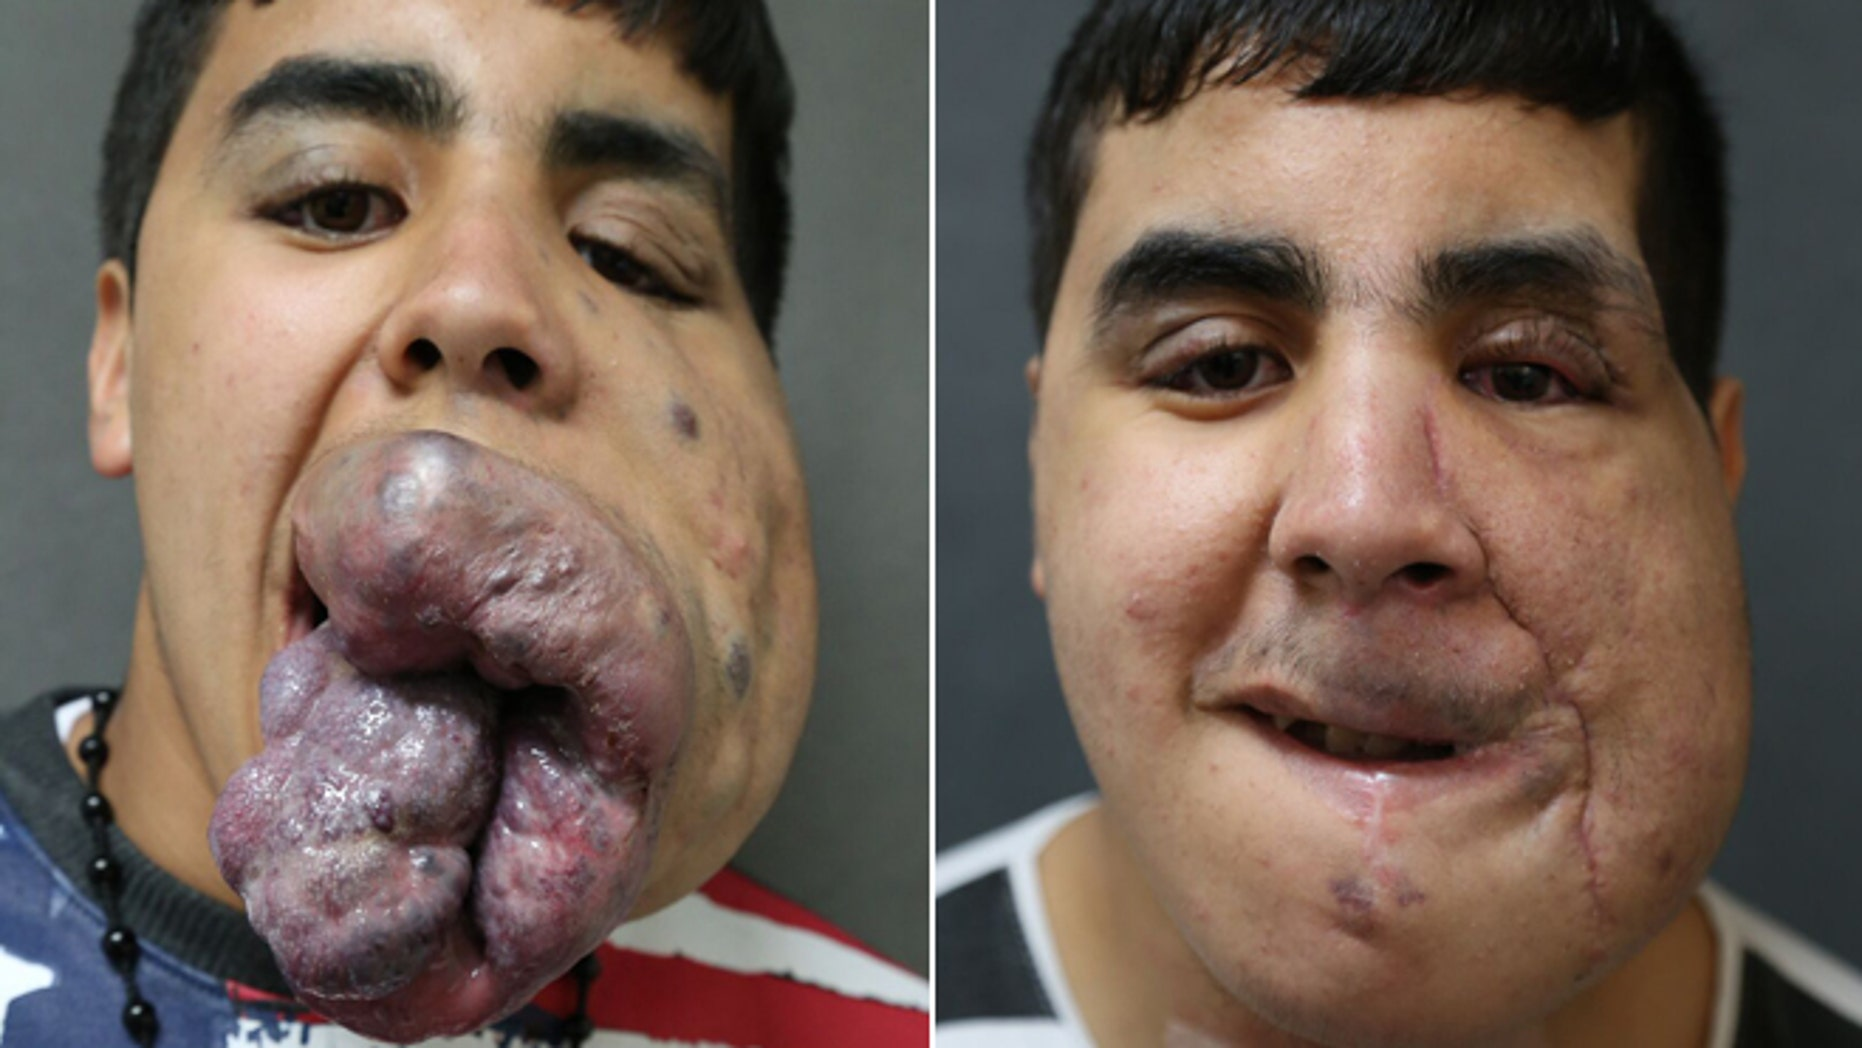 Zoubir Lahdodi, 18, was born with venus malformation, which threatened his ability to eat, breathe, speak and sleep. Lenox Hill Hospital surgeons performed seven surgeries to help correct the potentially fatal disorder.